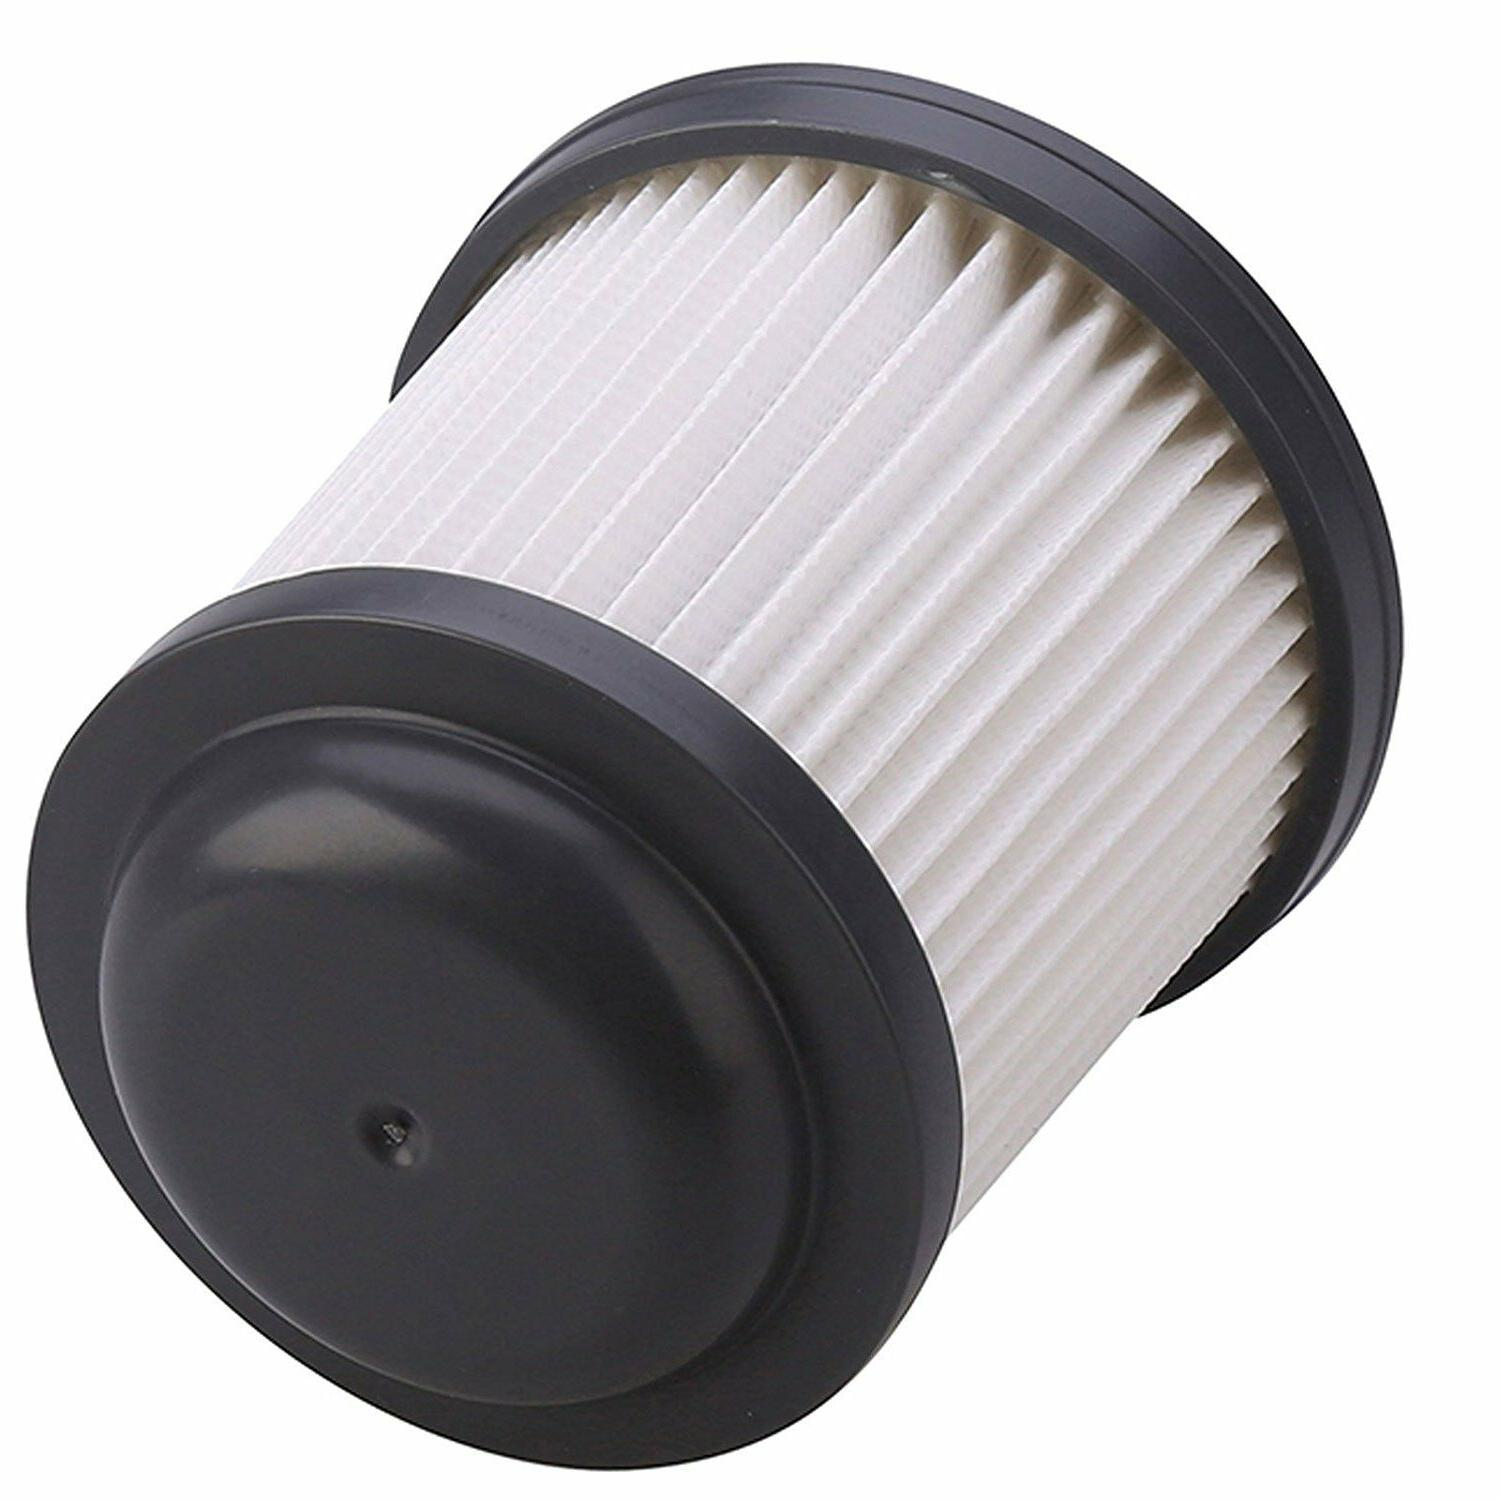 pleated filter for black and decker pivot